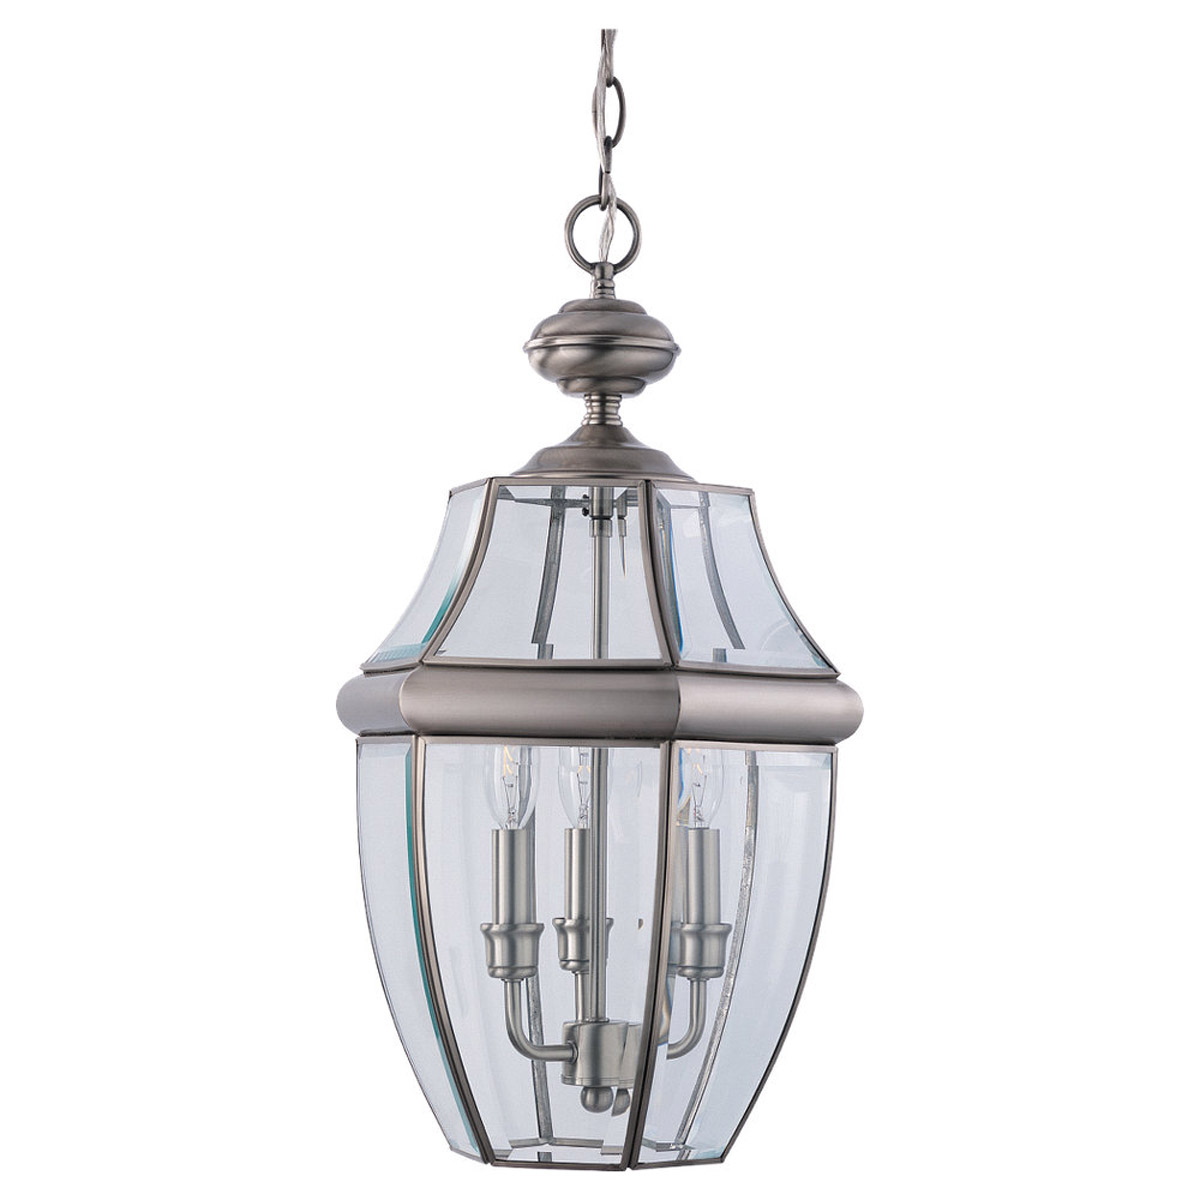 Sea Gull Lighting Lancaster 3 Light Outdoor Pendant in Antique Brushed Nickel 6039-965